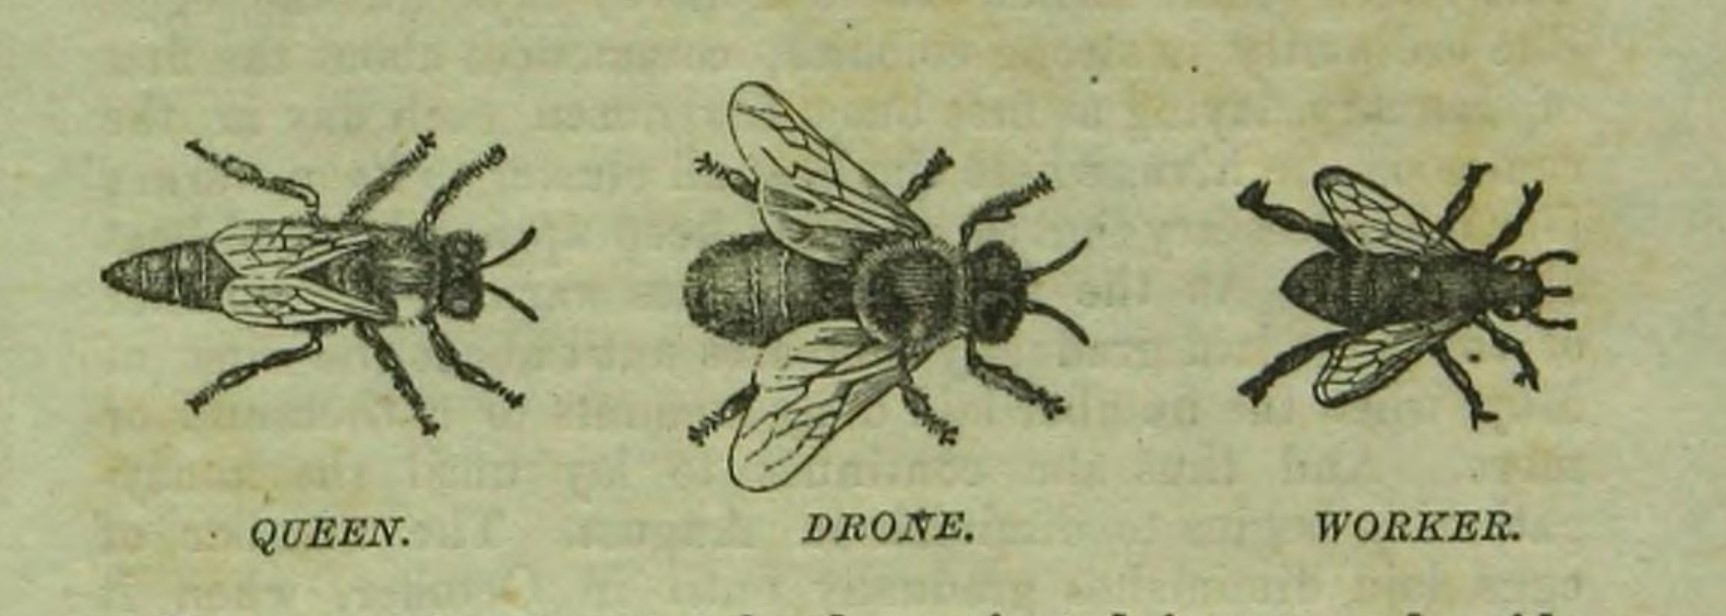 R Wilkin, Handbook in Bee Culture, 1871a